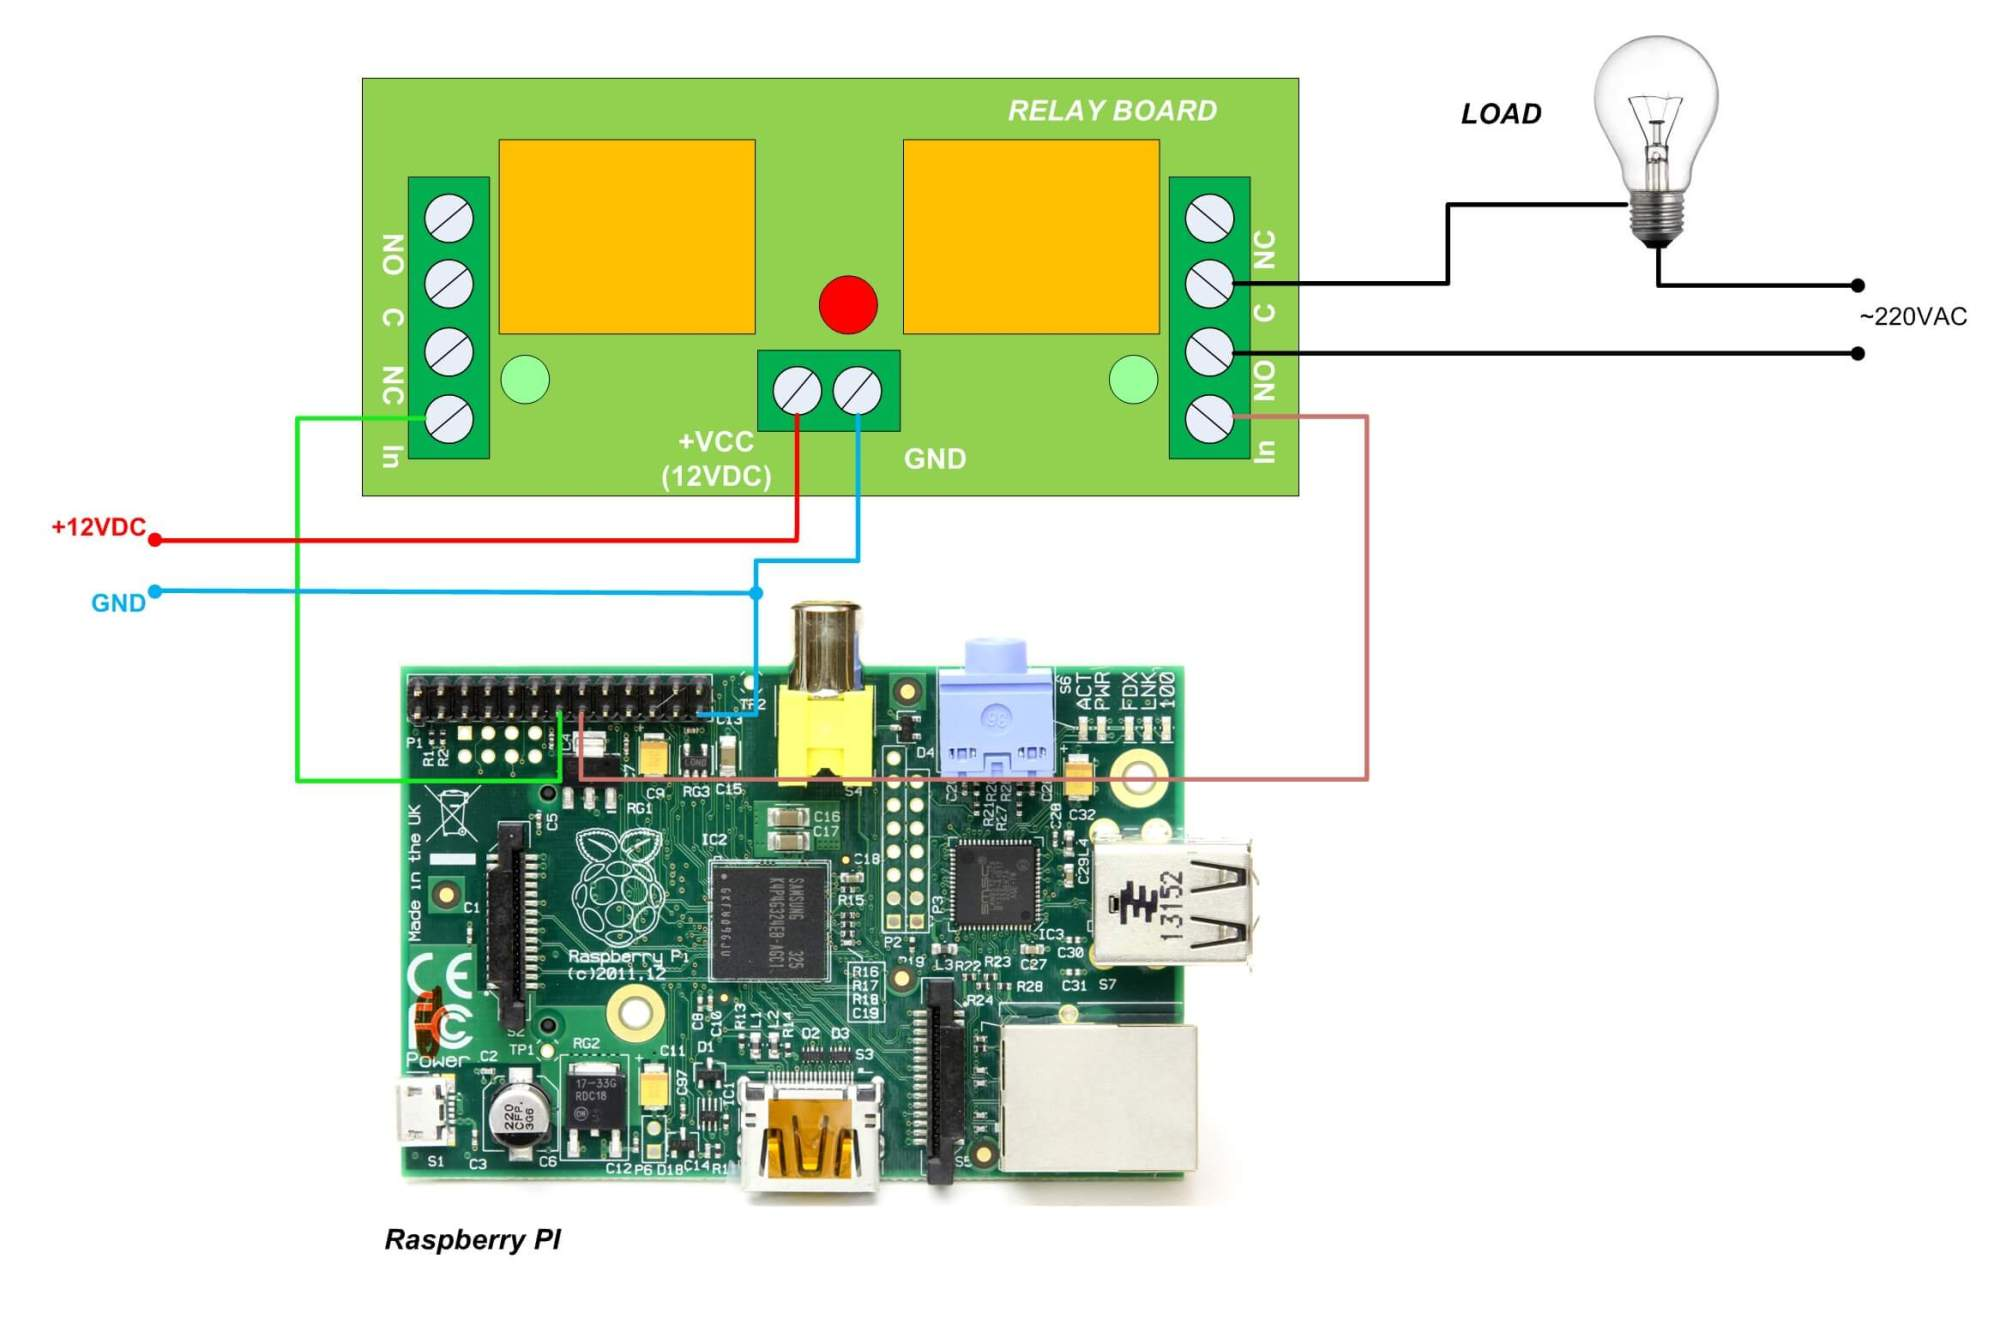 hight resolution of relay board connected to raspberry pi